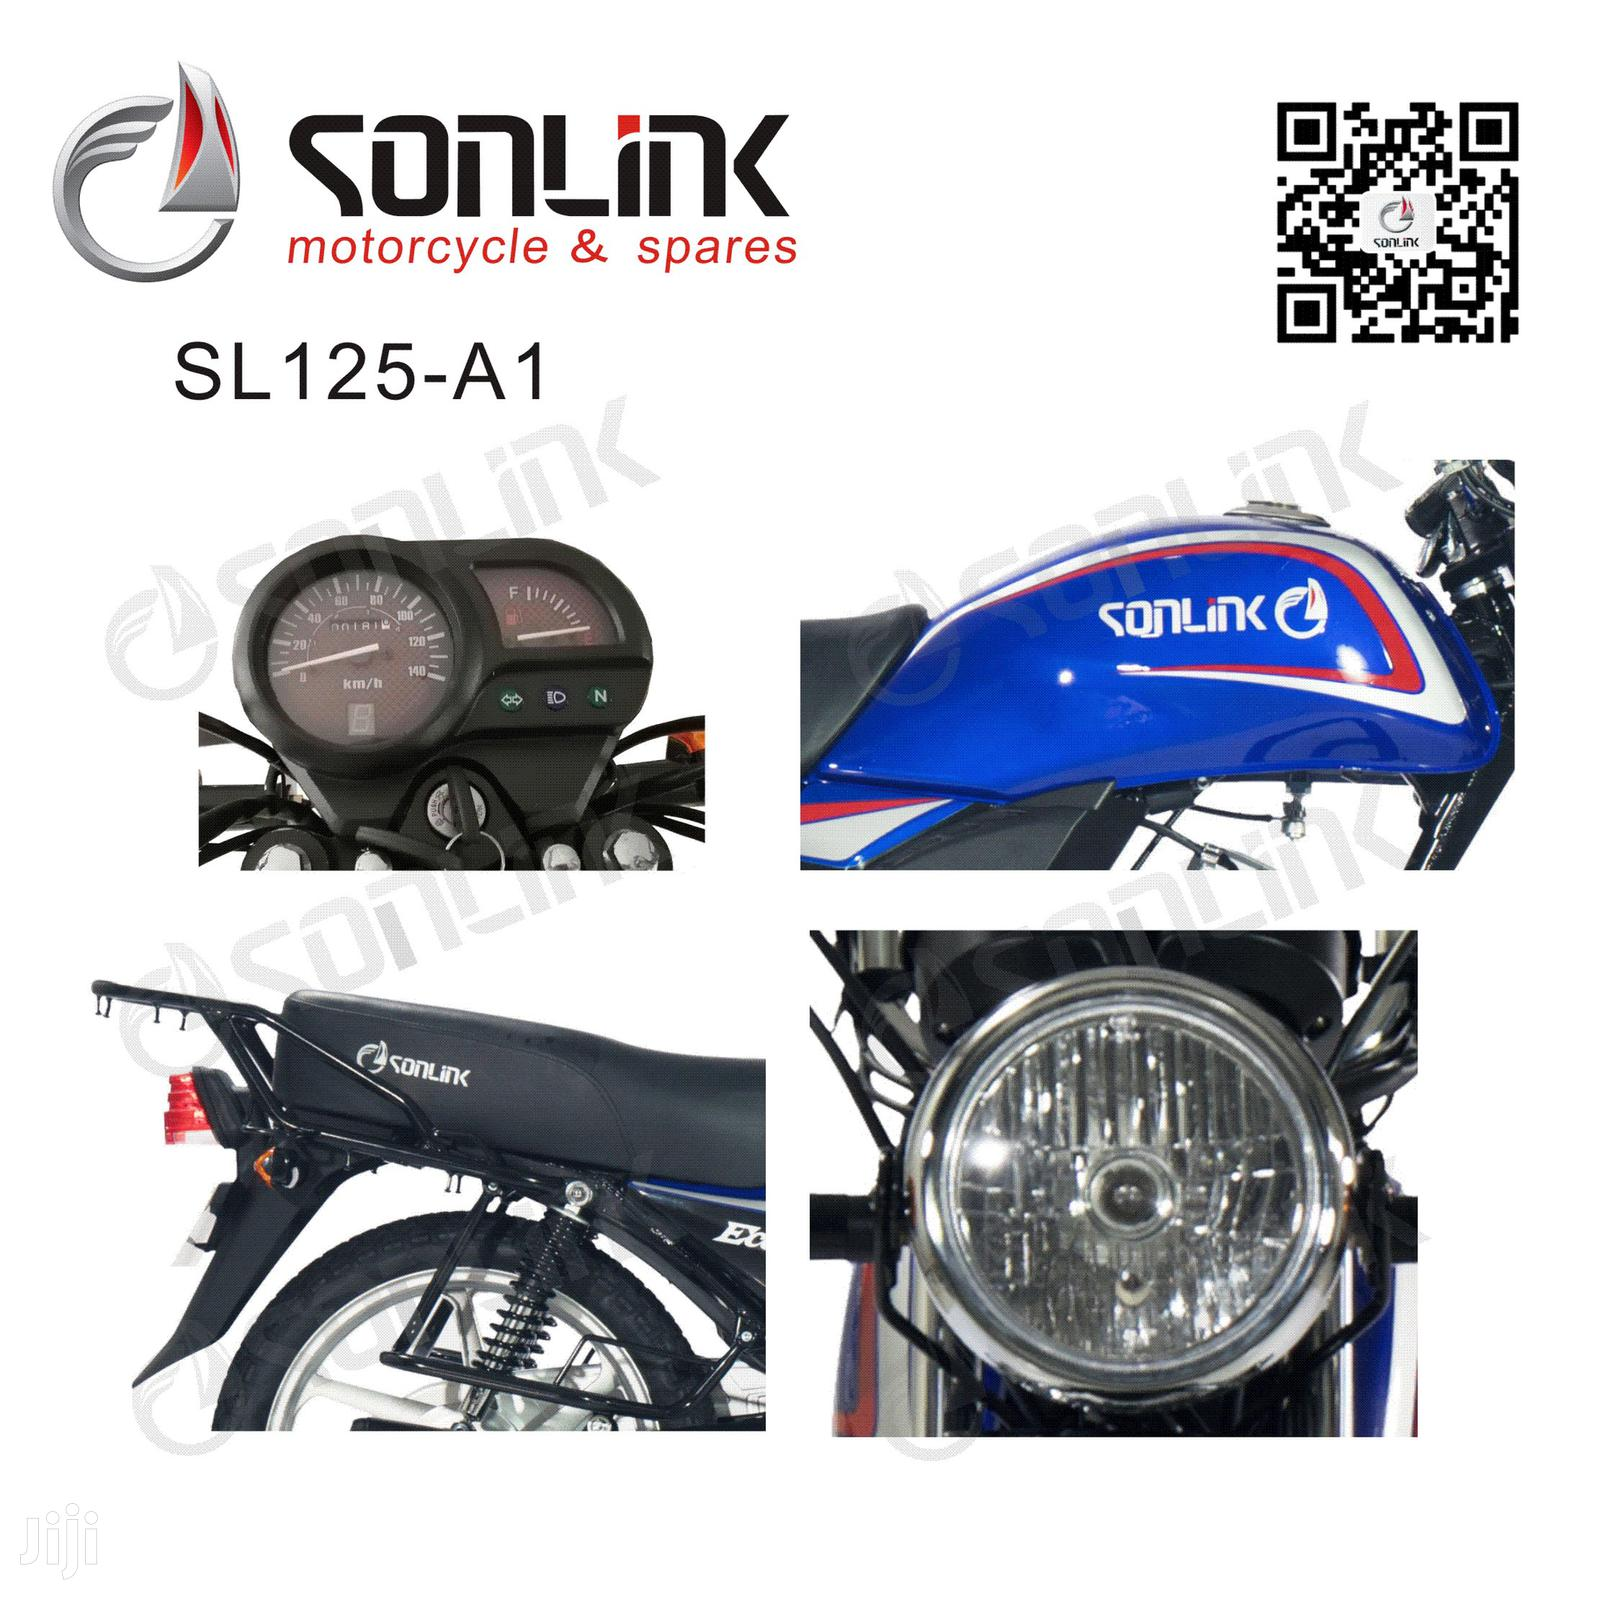 New Sonlink SL150-A1 2019 Blue | Motorcycles & Scooters for sale in Nairobi Central, Nairobi, Kenya